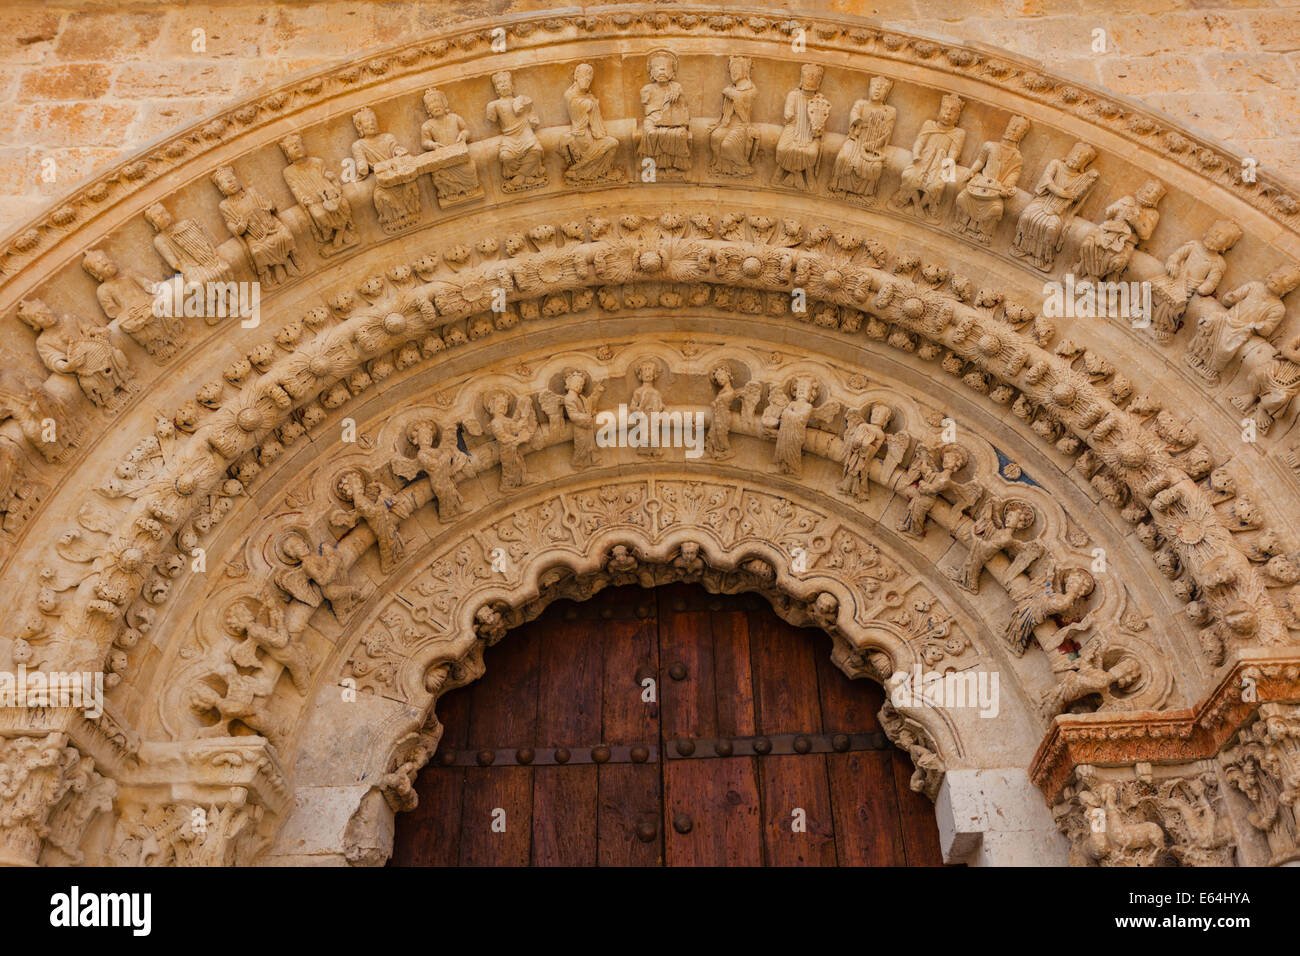 closeup view of romanesque archivolts and voussoir detail from the collegiate church of the town of Toro in Zamora - Stock Image